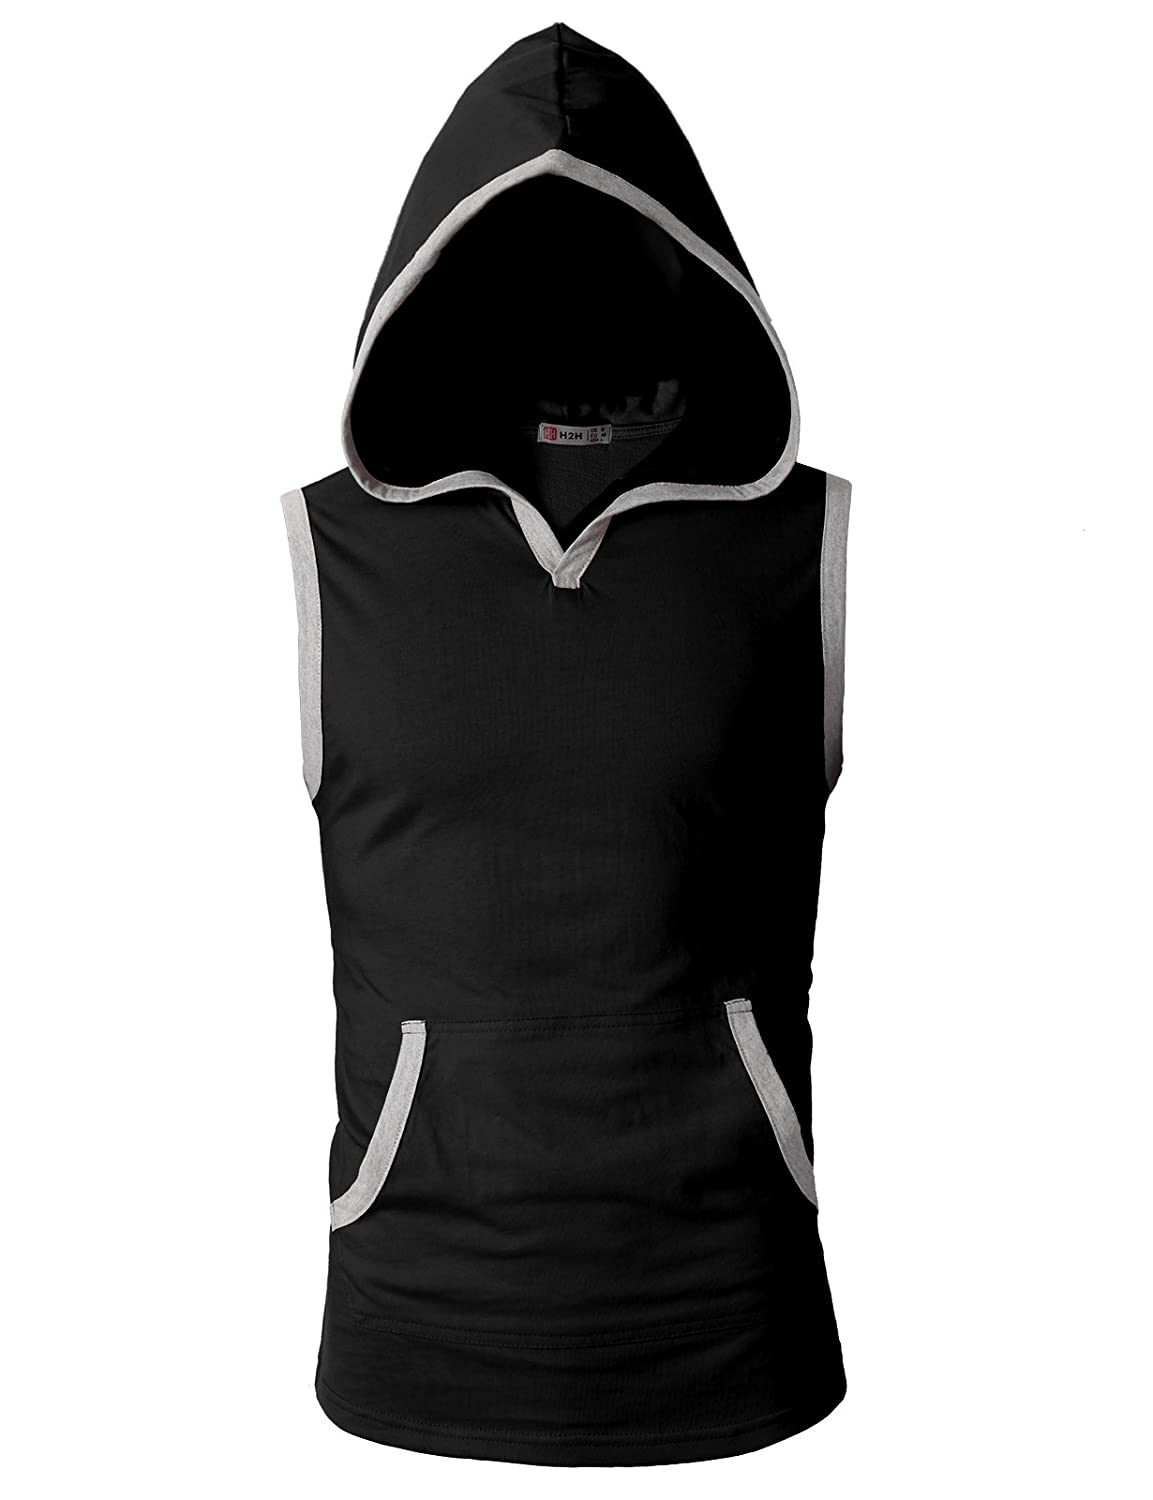 7342f032 Amazon.com: H2H Men's Casual Hoodie Tank Tops Sleeveless Shirts Gym Workout  with Pockets: Clothing